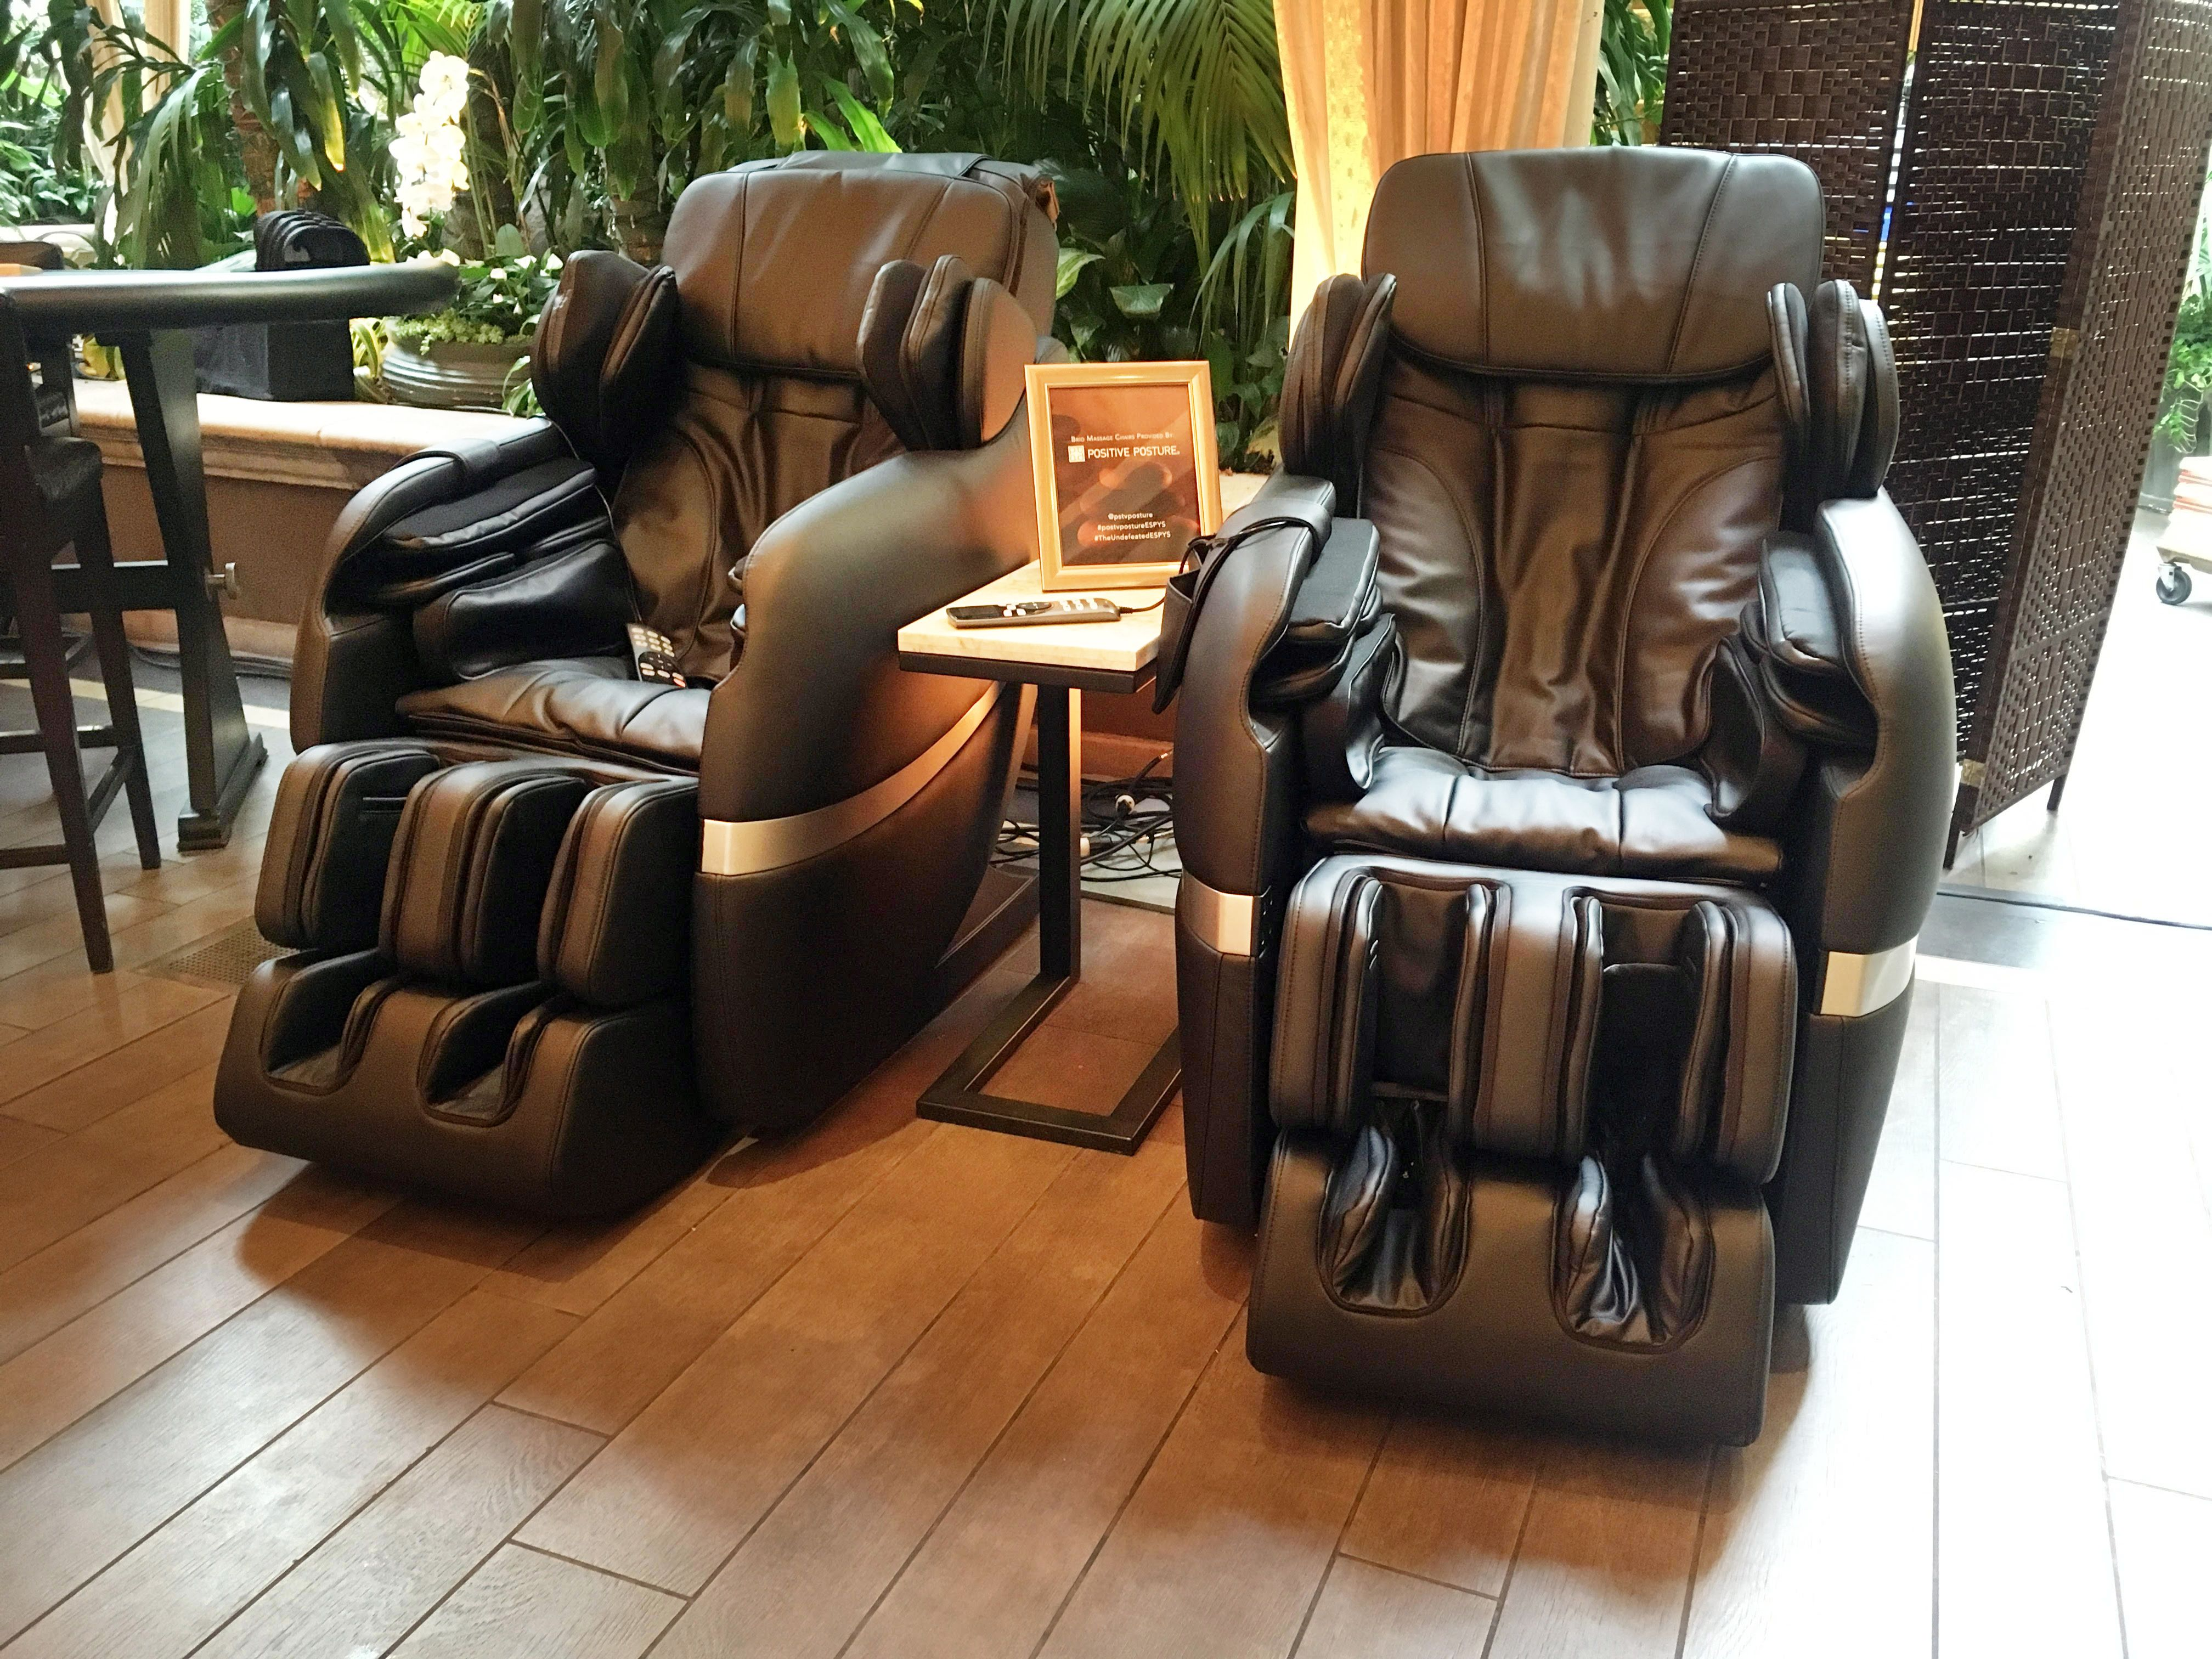 positive posture massage chair herman miller ergonomic no sunday night blues if you are kicking back in your own brio